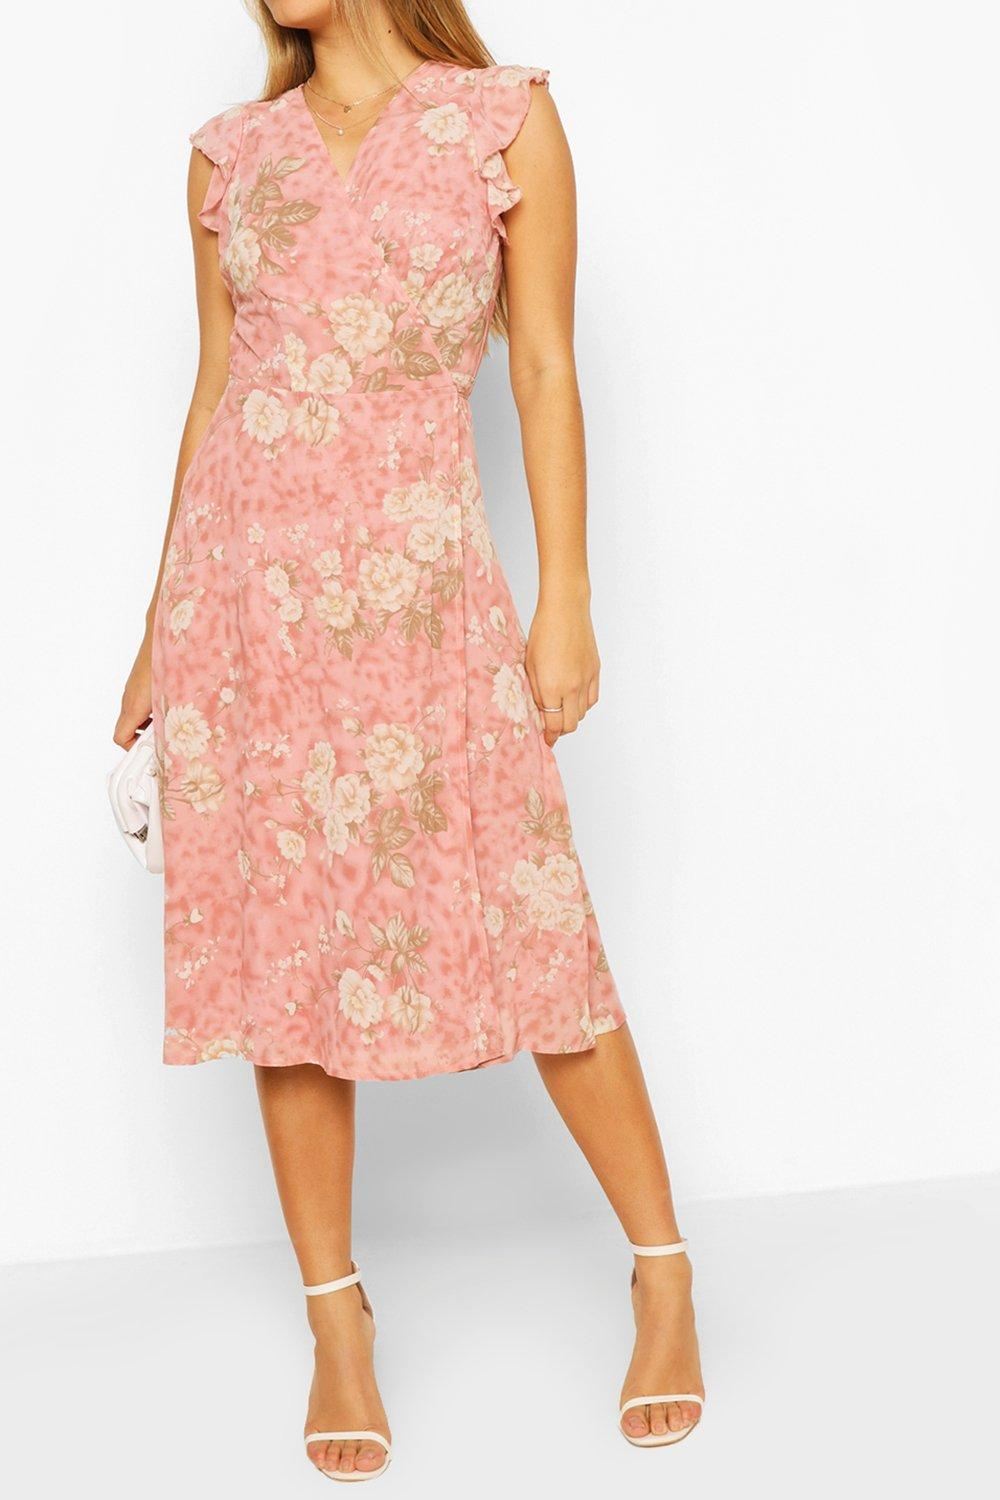 50-80% off Floral Ruffle Wrap Skater Dress